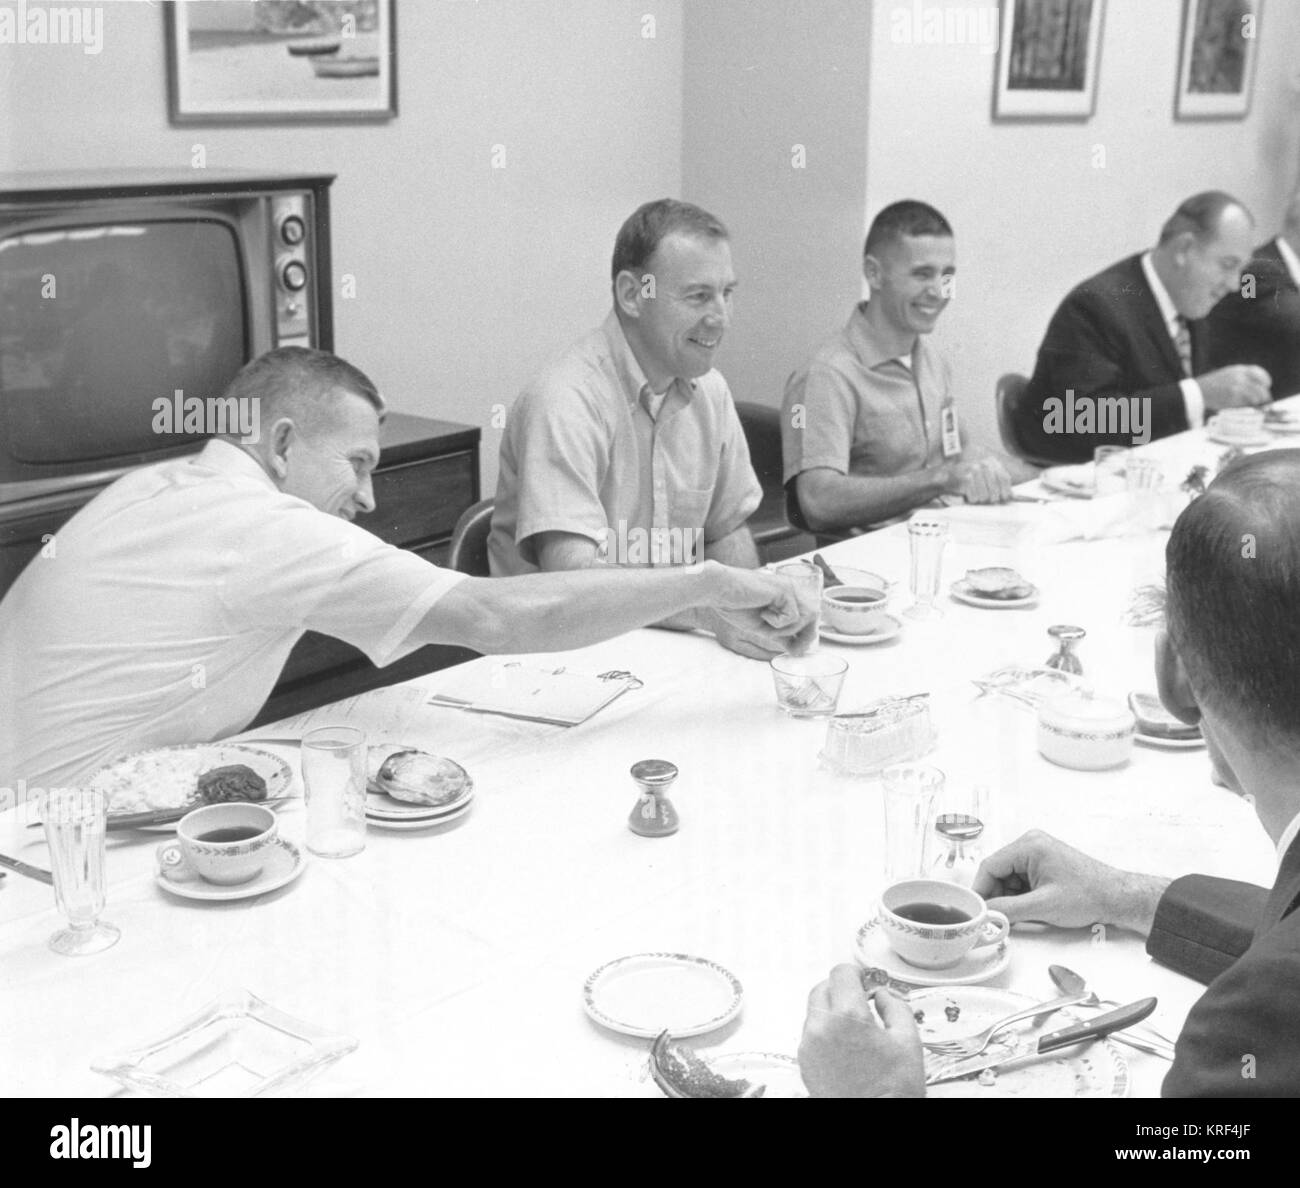 ASTRONAUTS AT BREAKFAST PRIOR TO THEIR MISSION, APOLLO 8 ASTRONAUTS (L TO R) BORMAN, FRANK; LOVELL, JAMES; AND ANDERS, - Stock Image